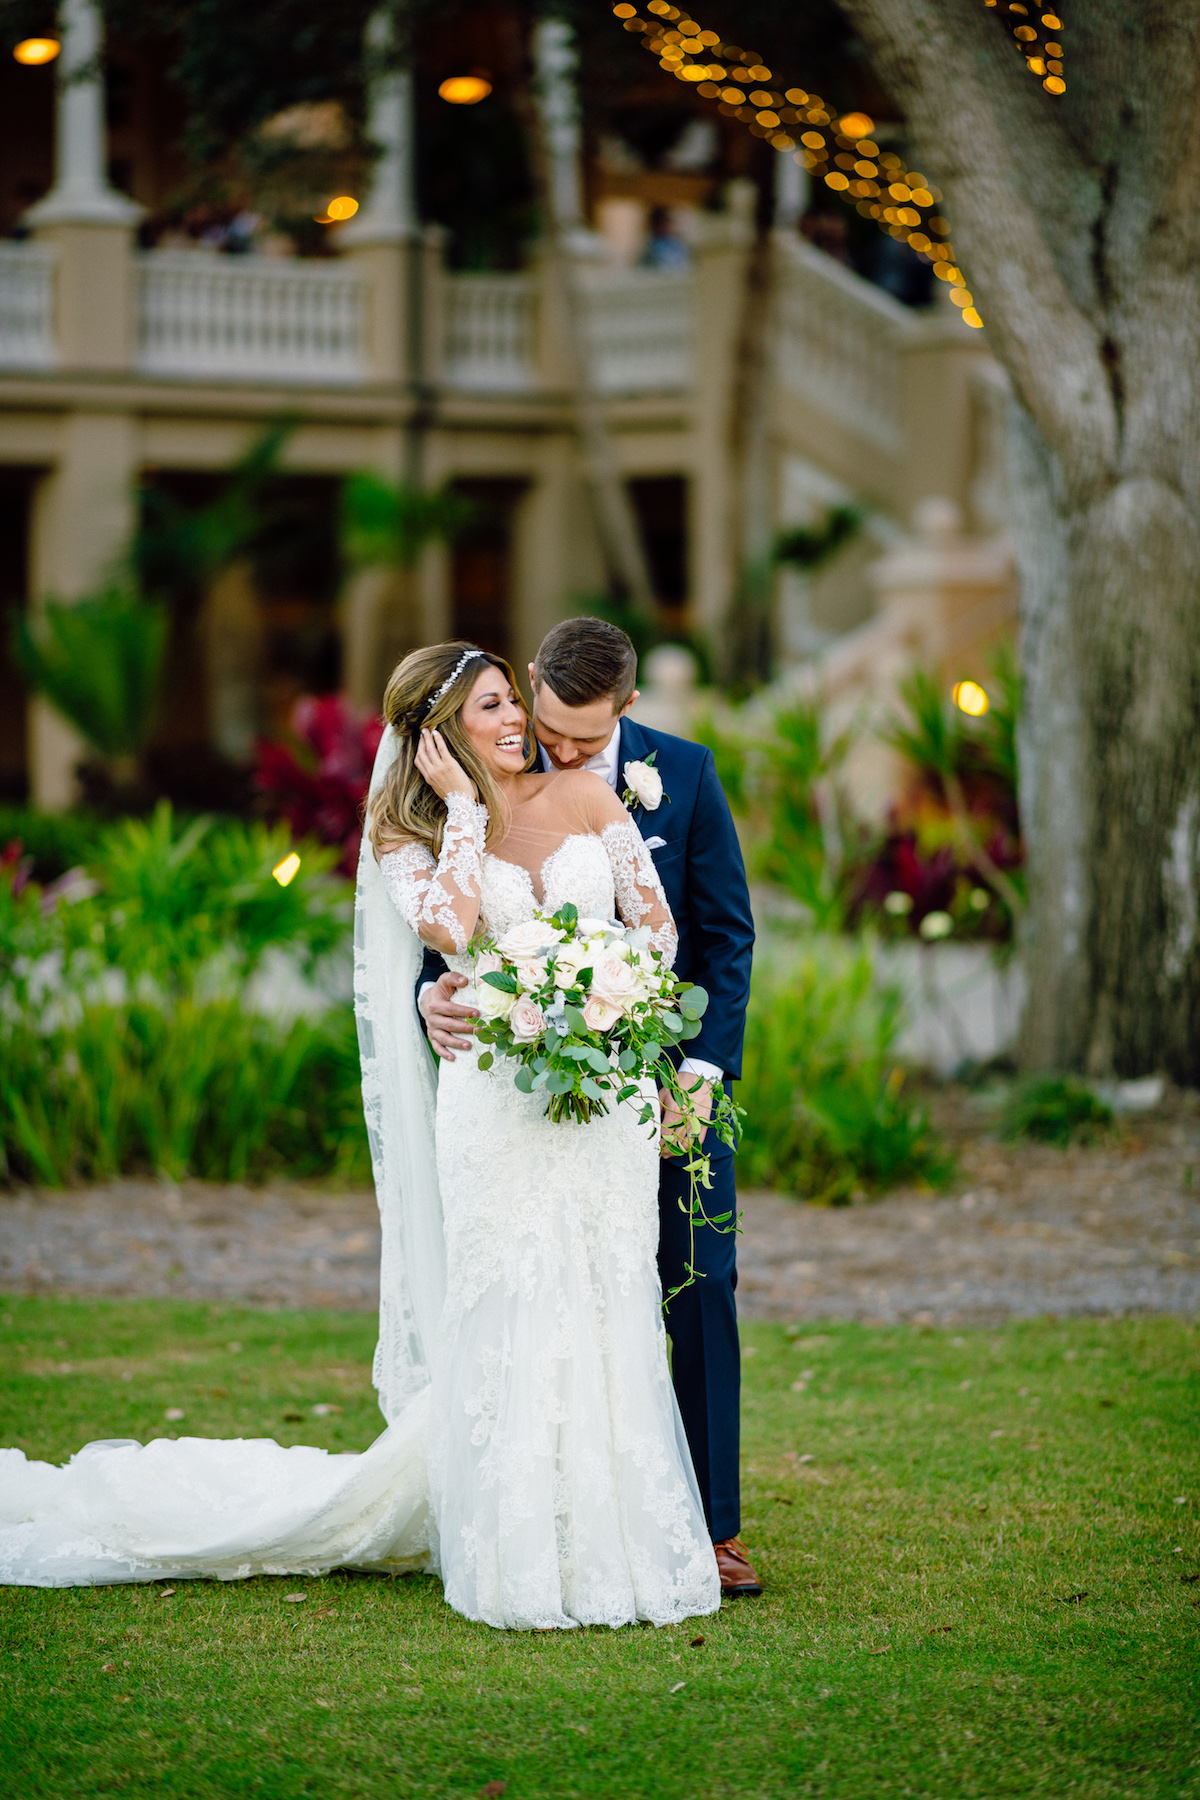 Matt Steeves Photography weddings at the Strand in Naples Florida Fort Myers.jpg